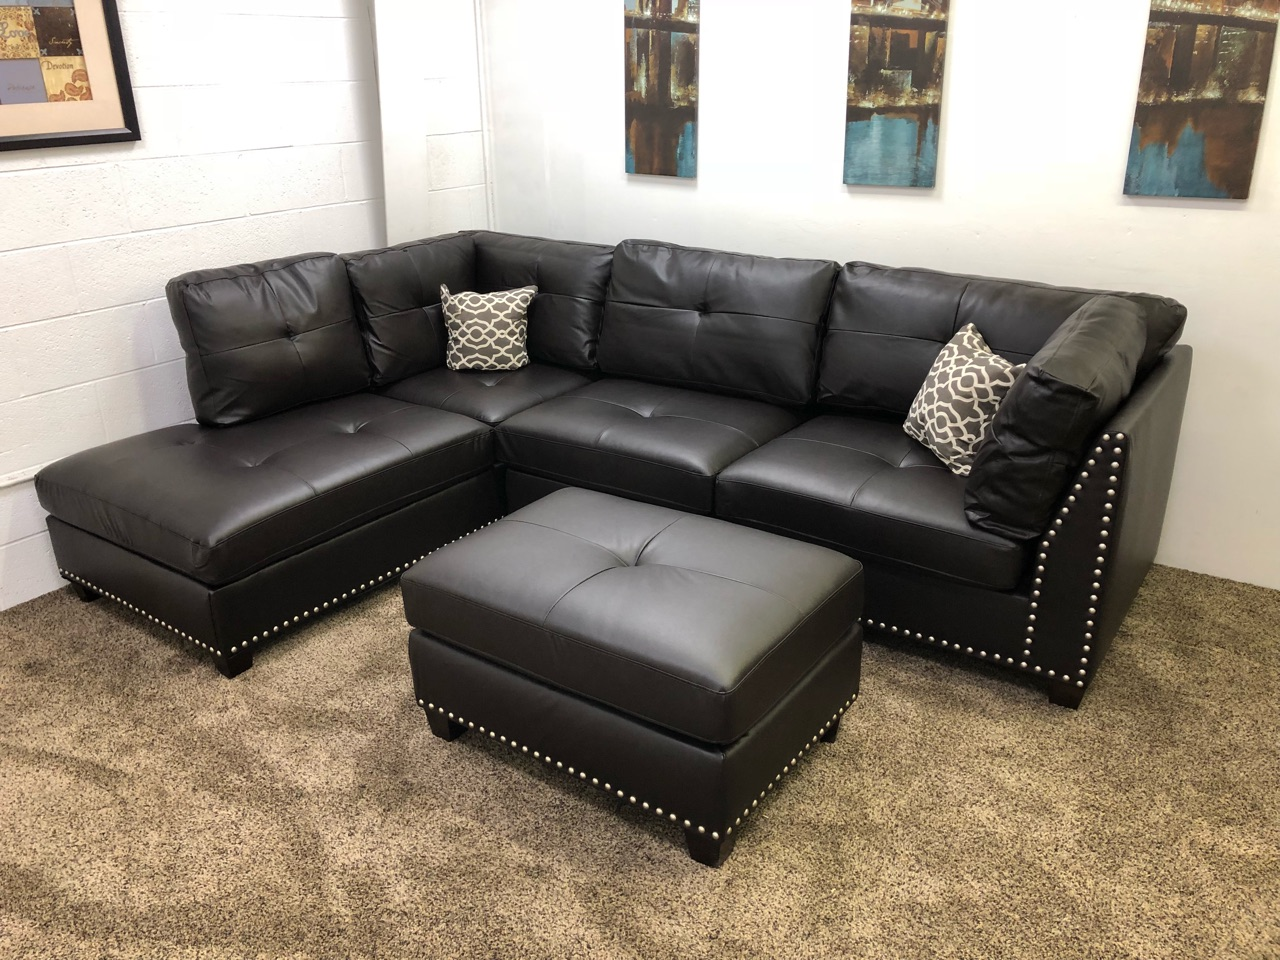 Lovely Light Black Vinyl Studded Sectional Sofa W/ Left Chaise Lounge And Ottoman